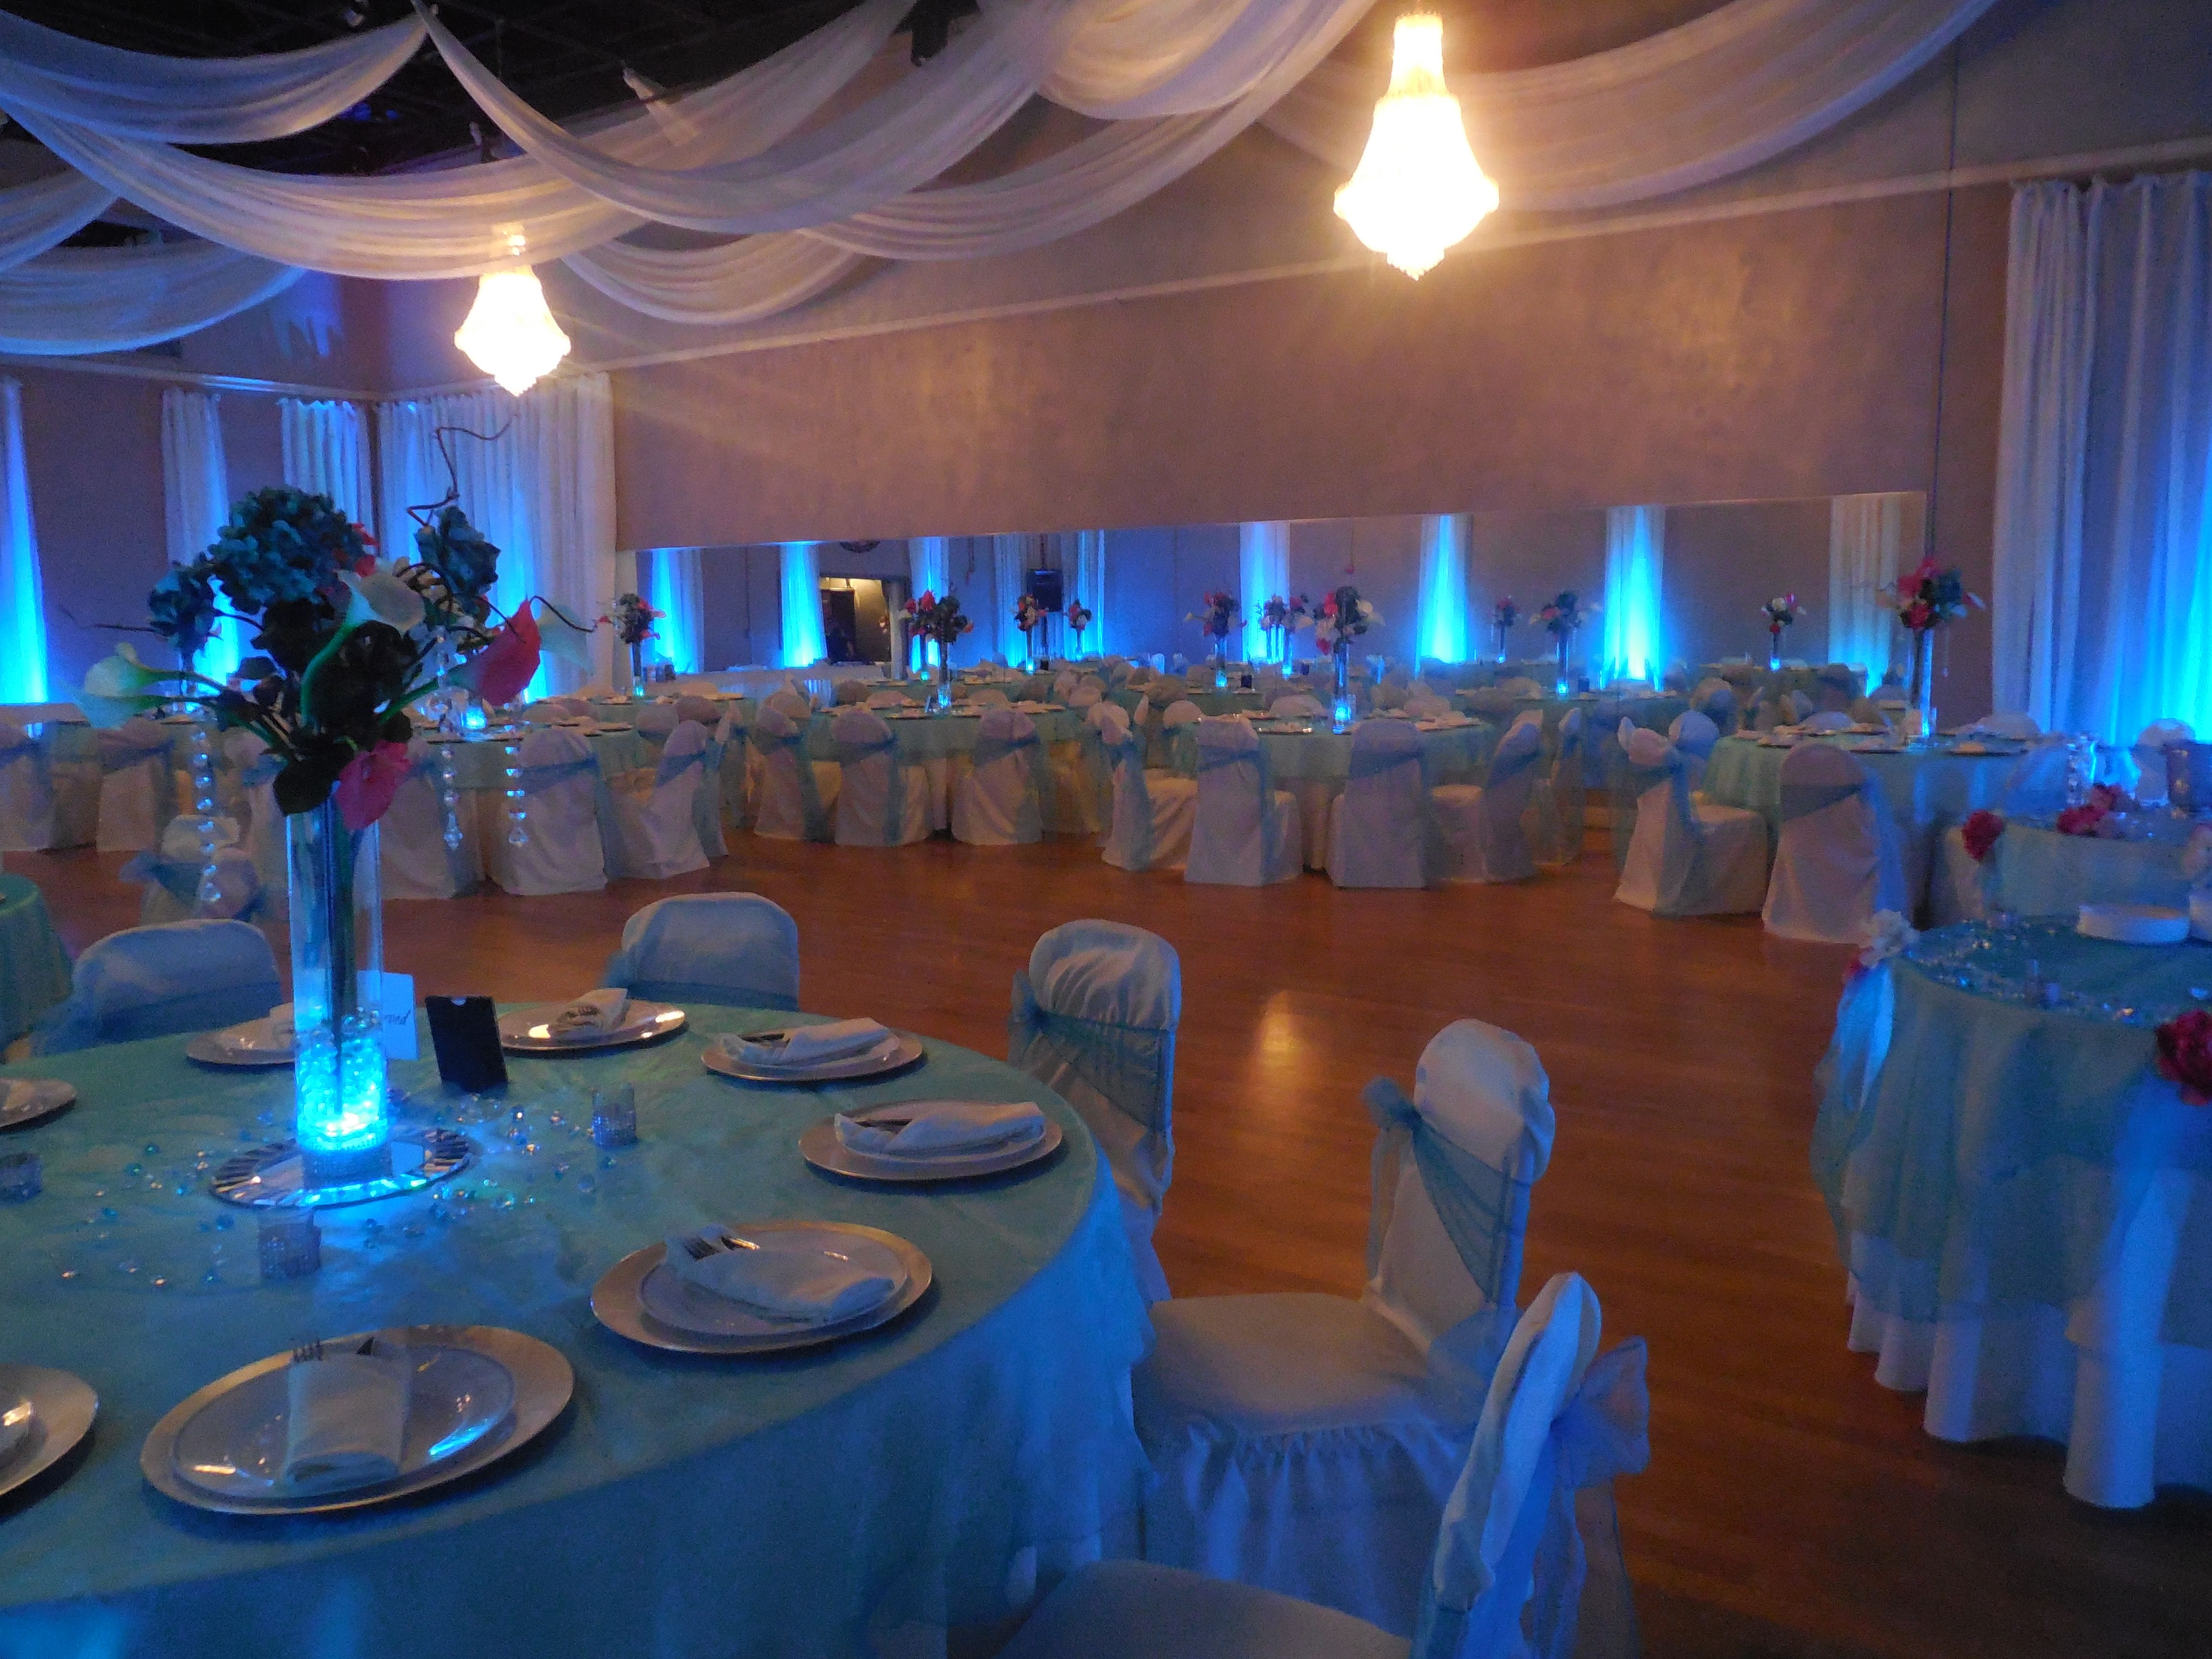 Baby blue color for wedding at the crystal ballroom 3 so beautiful baby blue color for wedding at the crystal ballroom 3 so beautiful orlando junglespirit Gallery